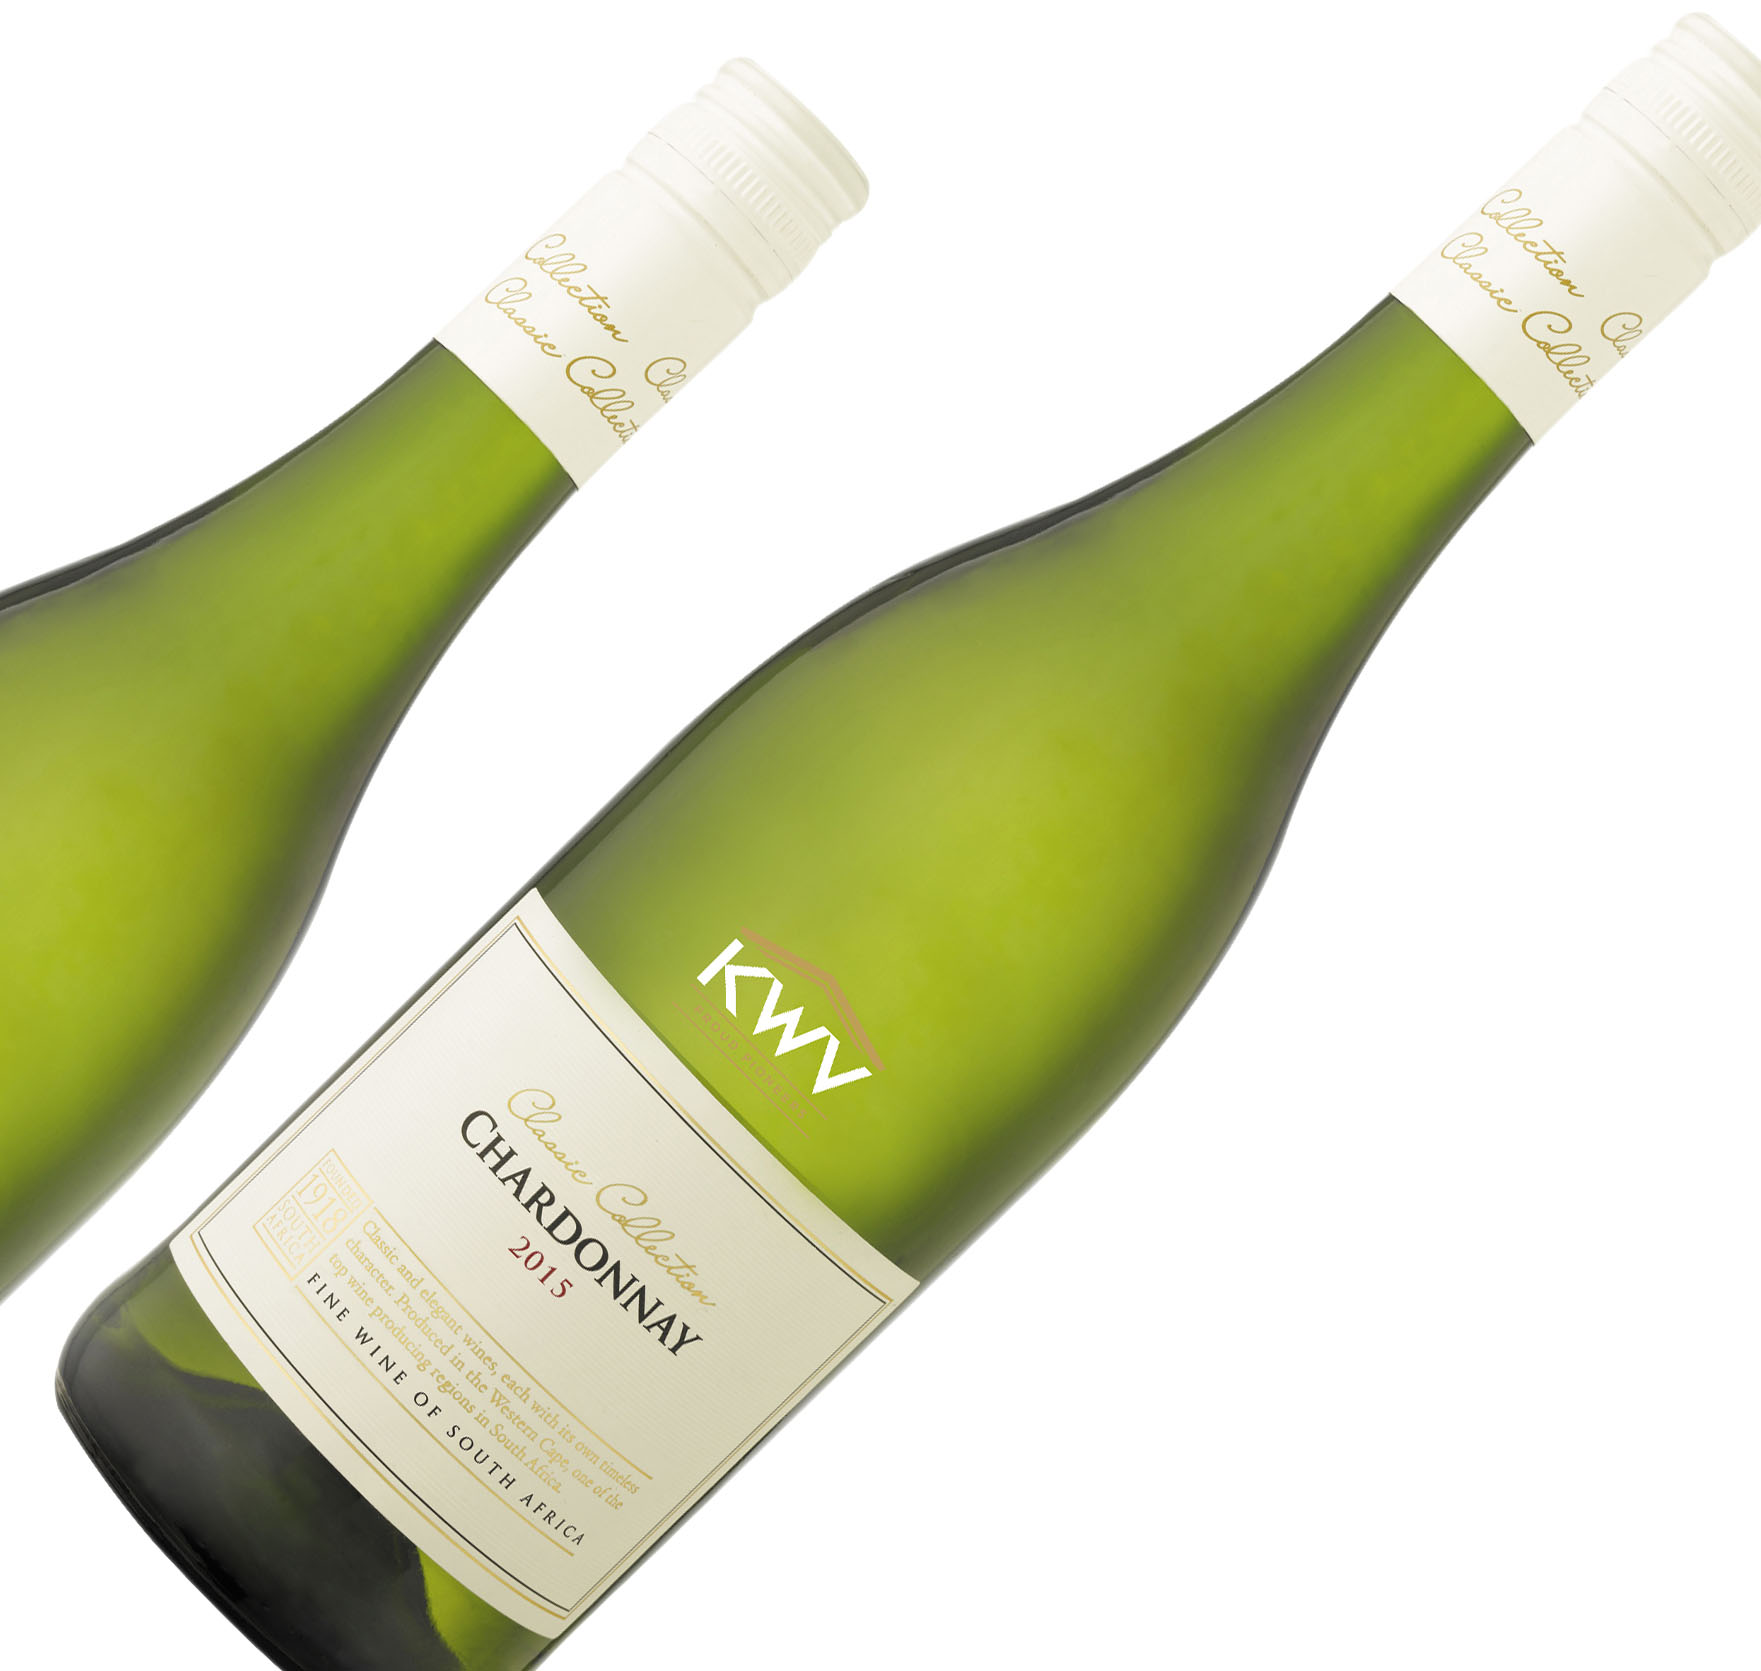 KWV Classic Collection Chardonnay 2016